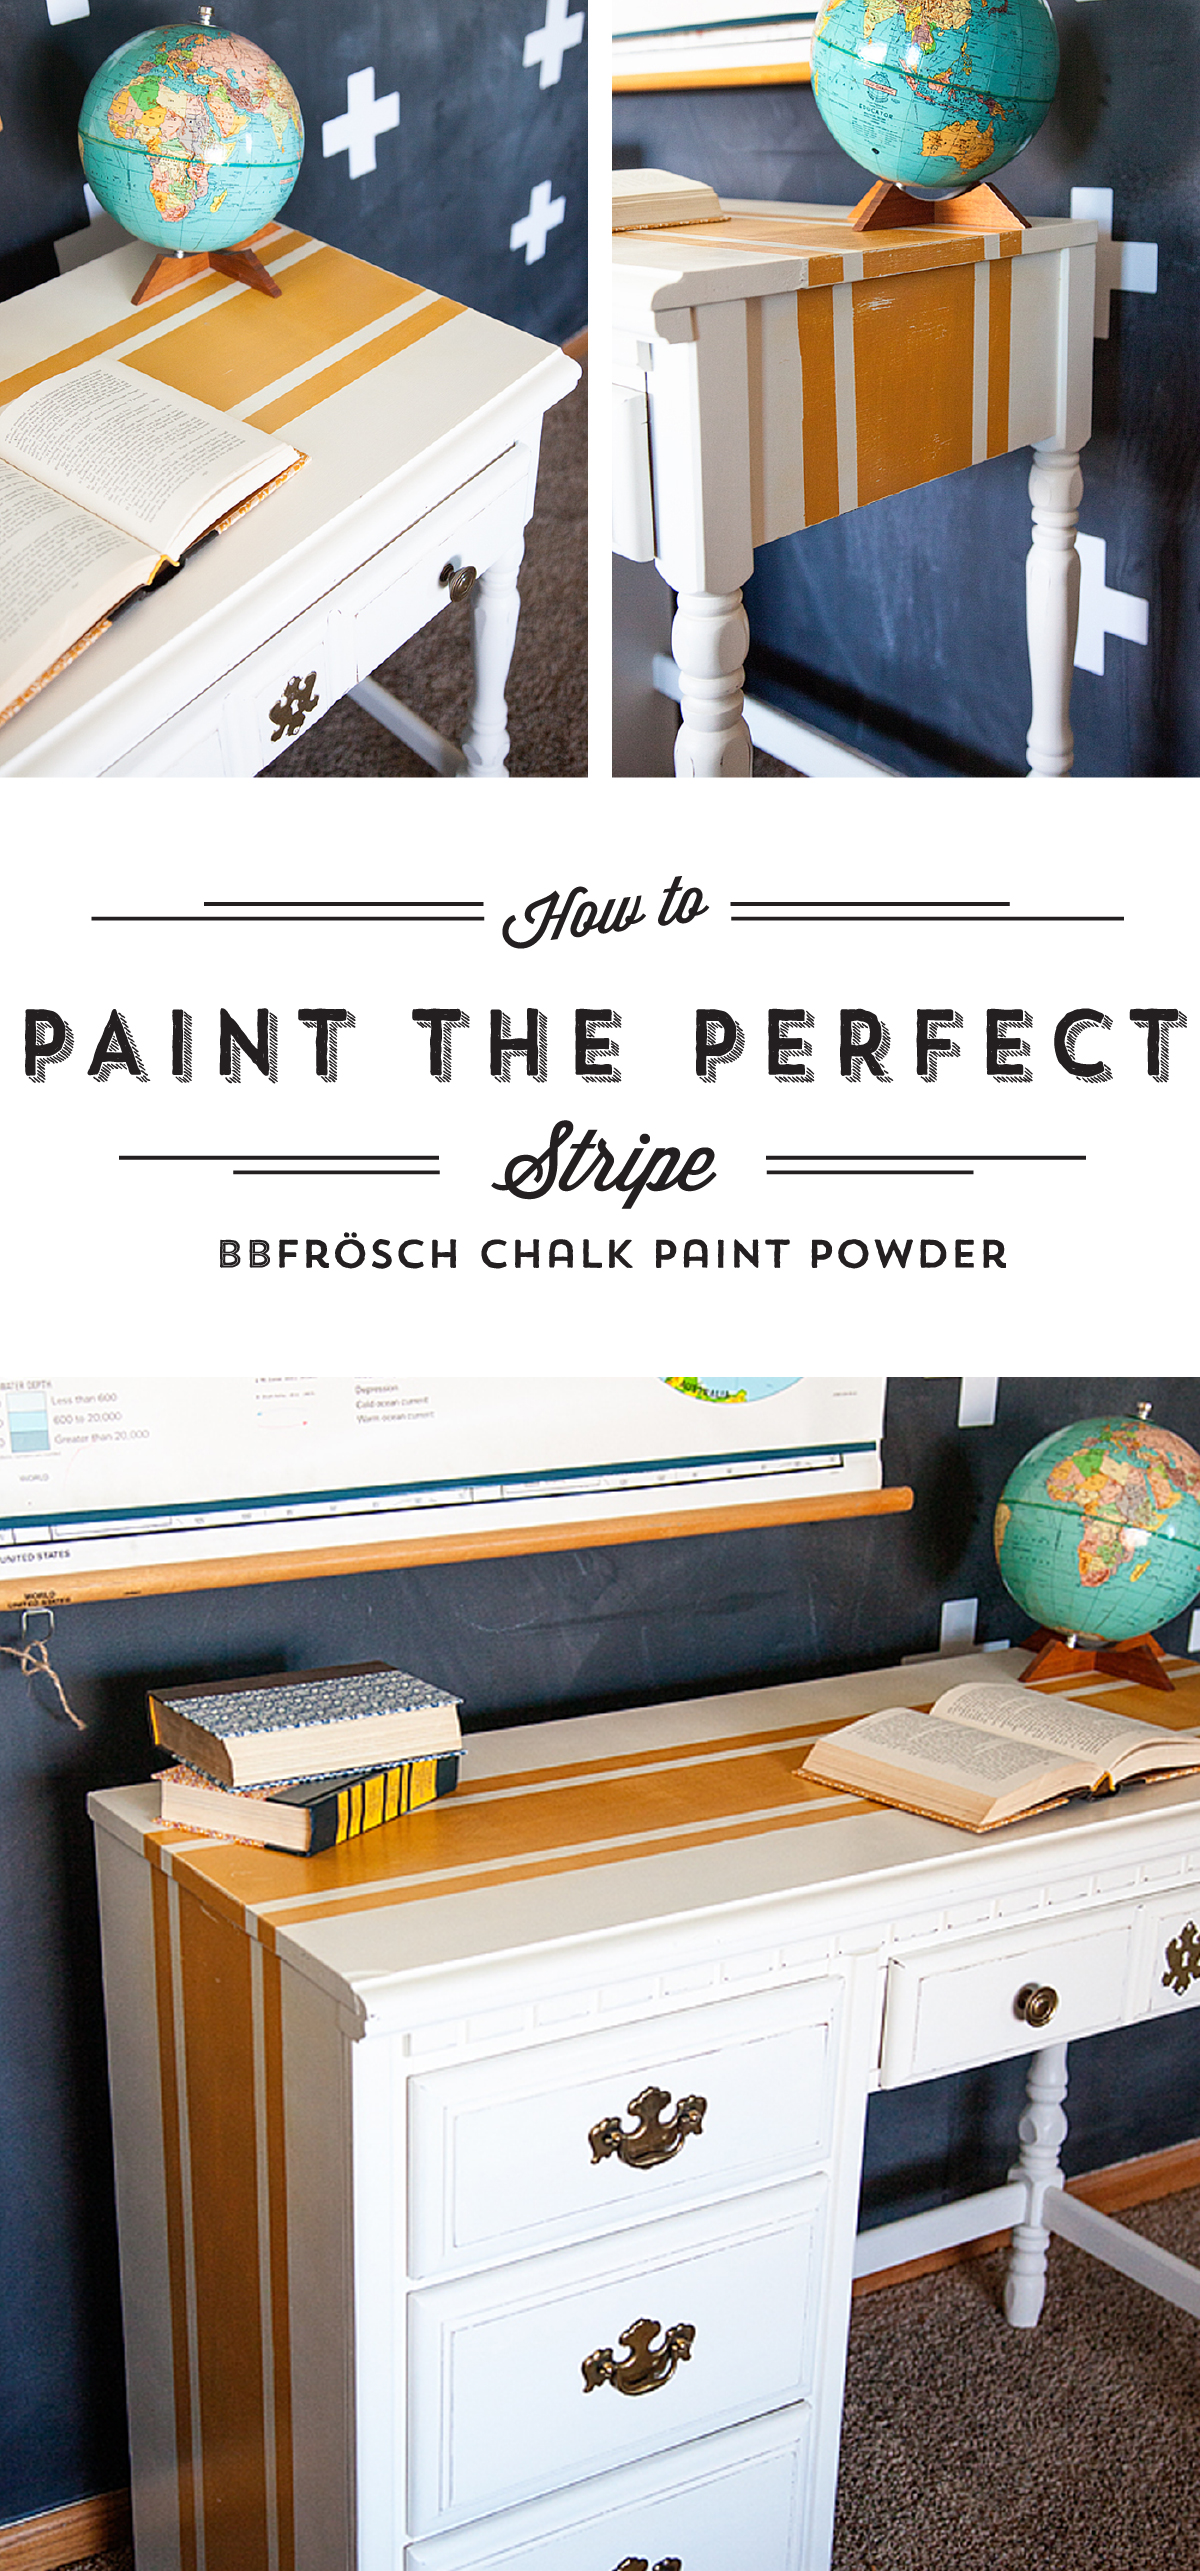 How-to-paint-perfect-stripes-with-BB-Frösch